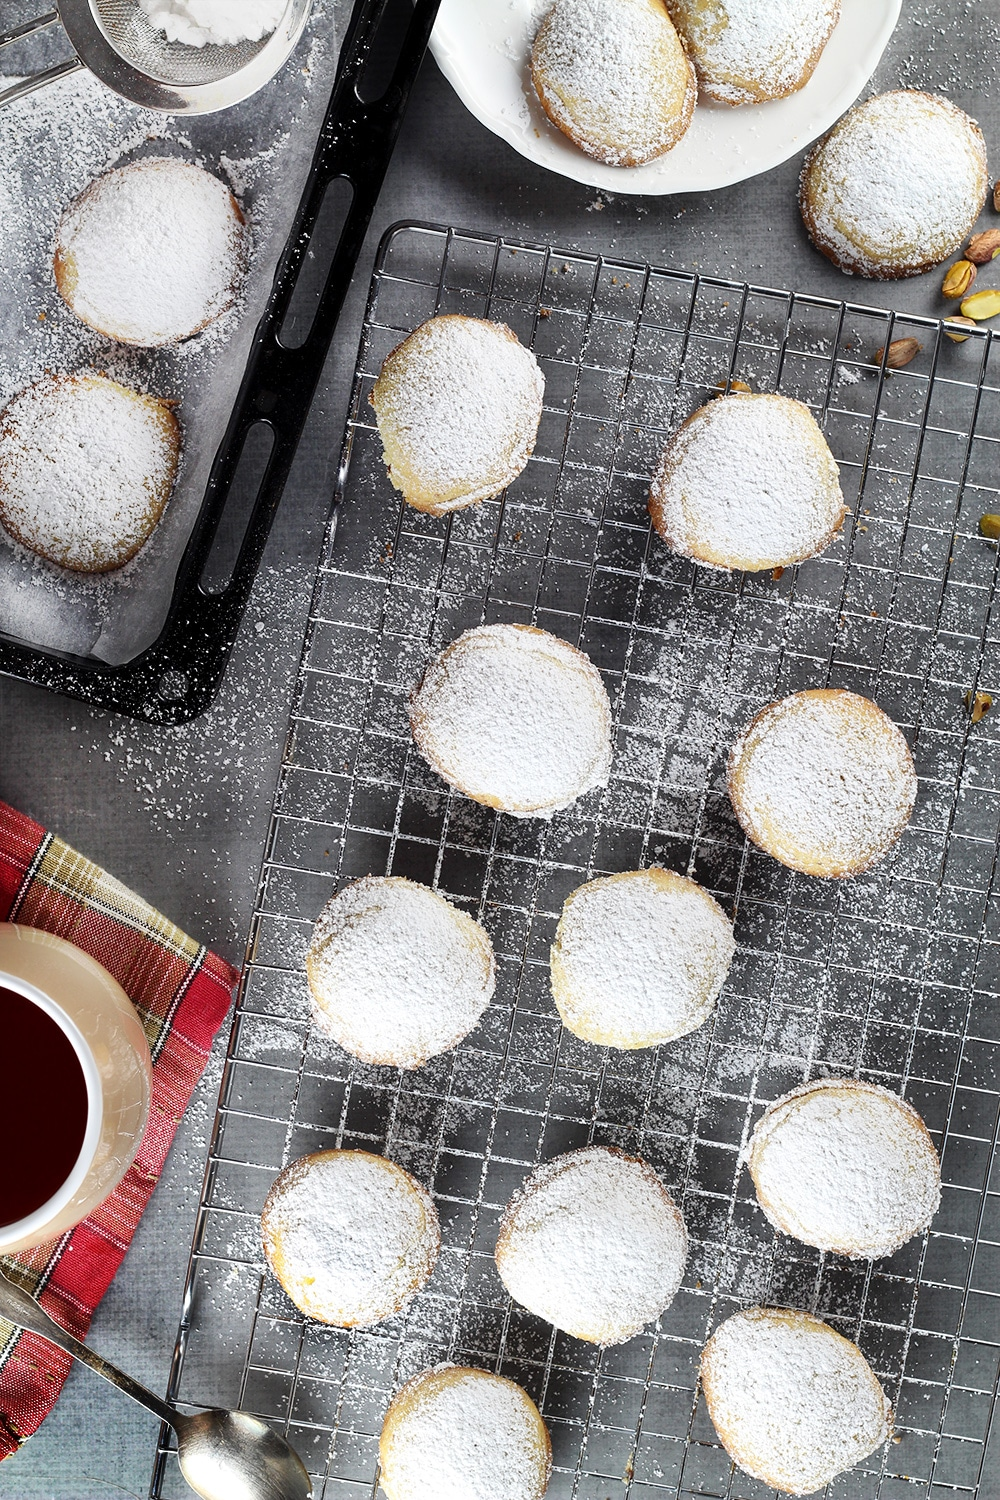 12 Amazing Christmas Recipes From Around The World for your holiday table. Everything from drinks and desserts to main dishes! #Christmas   cookingtheglobe.com